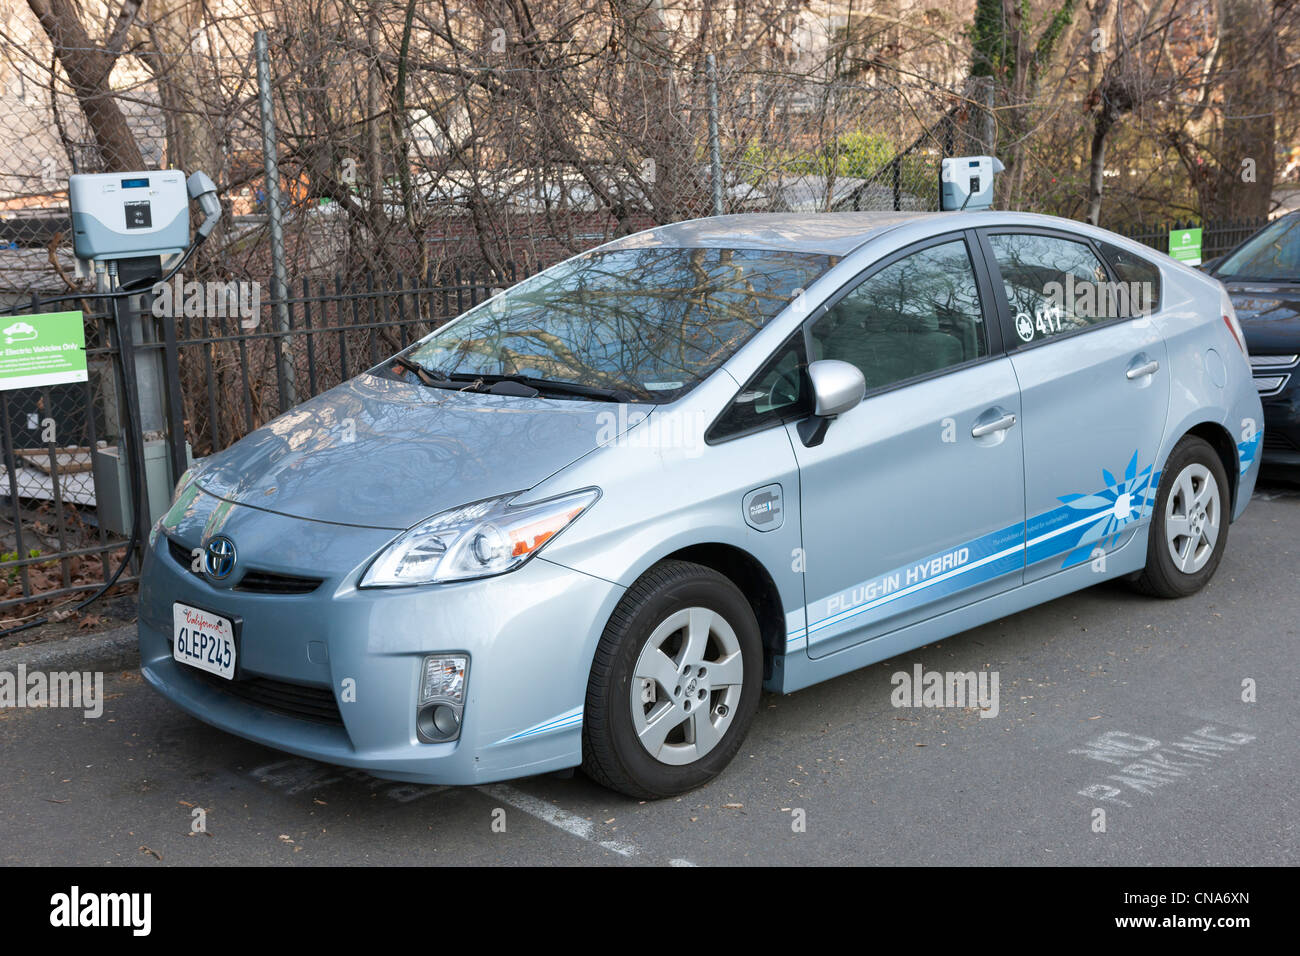 A Toyota Prius hybrid electric car, used by the New York City Parks department, receives a charge at a charging - Stock Image